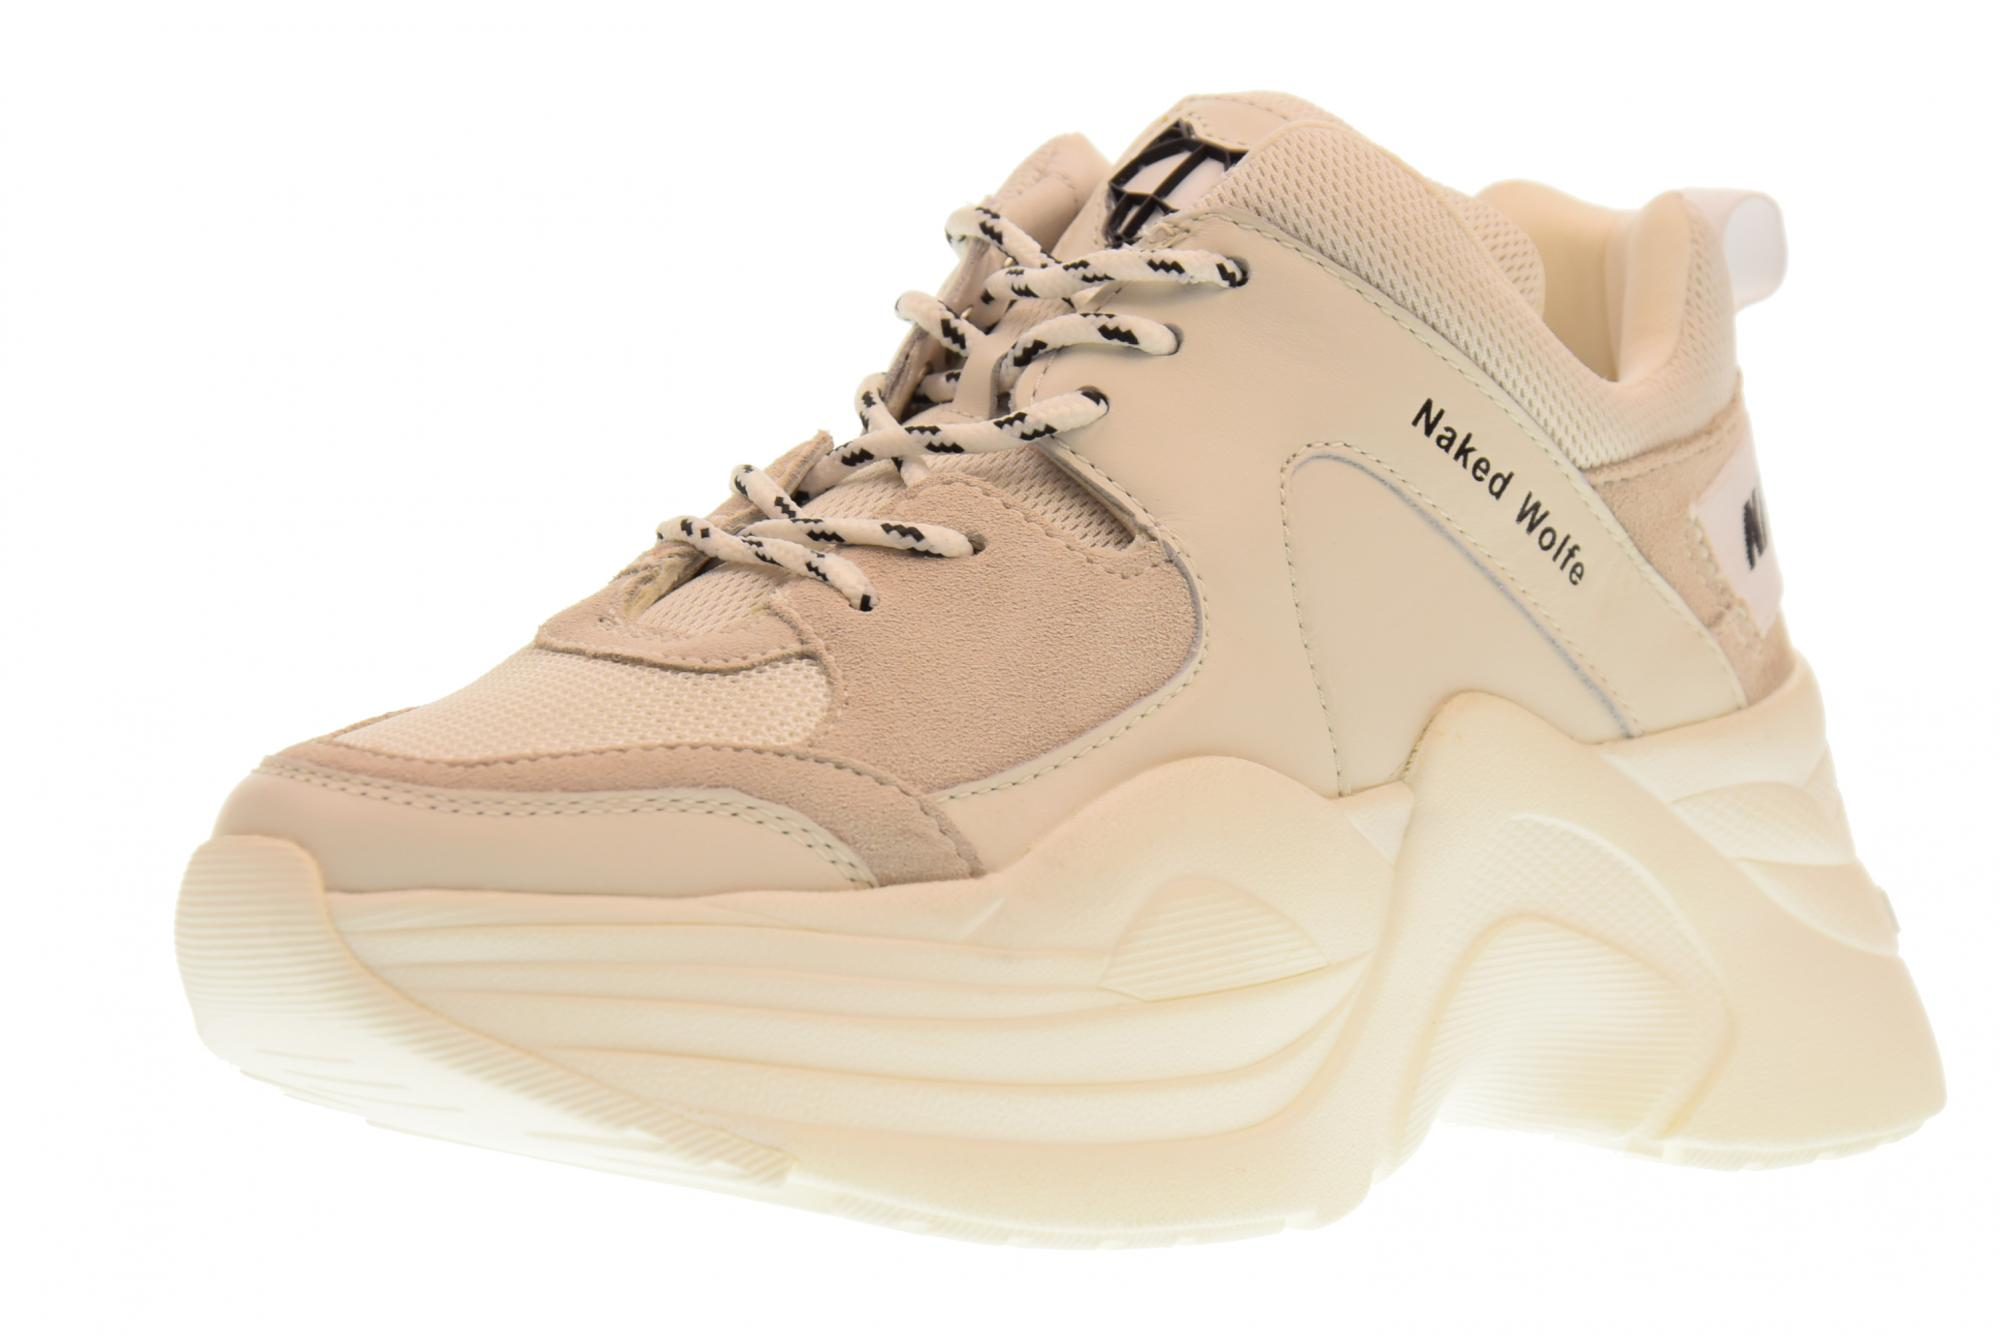 Wolfe Track Con ComboEbay Planos Naked White De Mujer Plataforma A18s Zapatos 7y6gbf